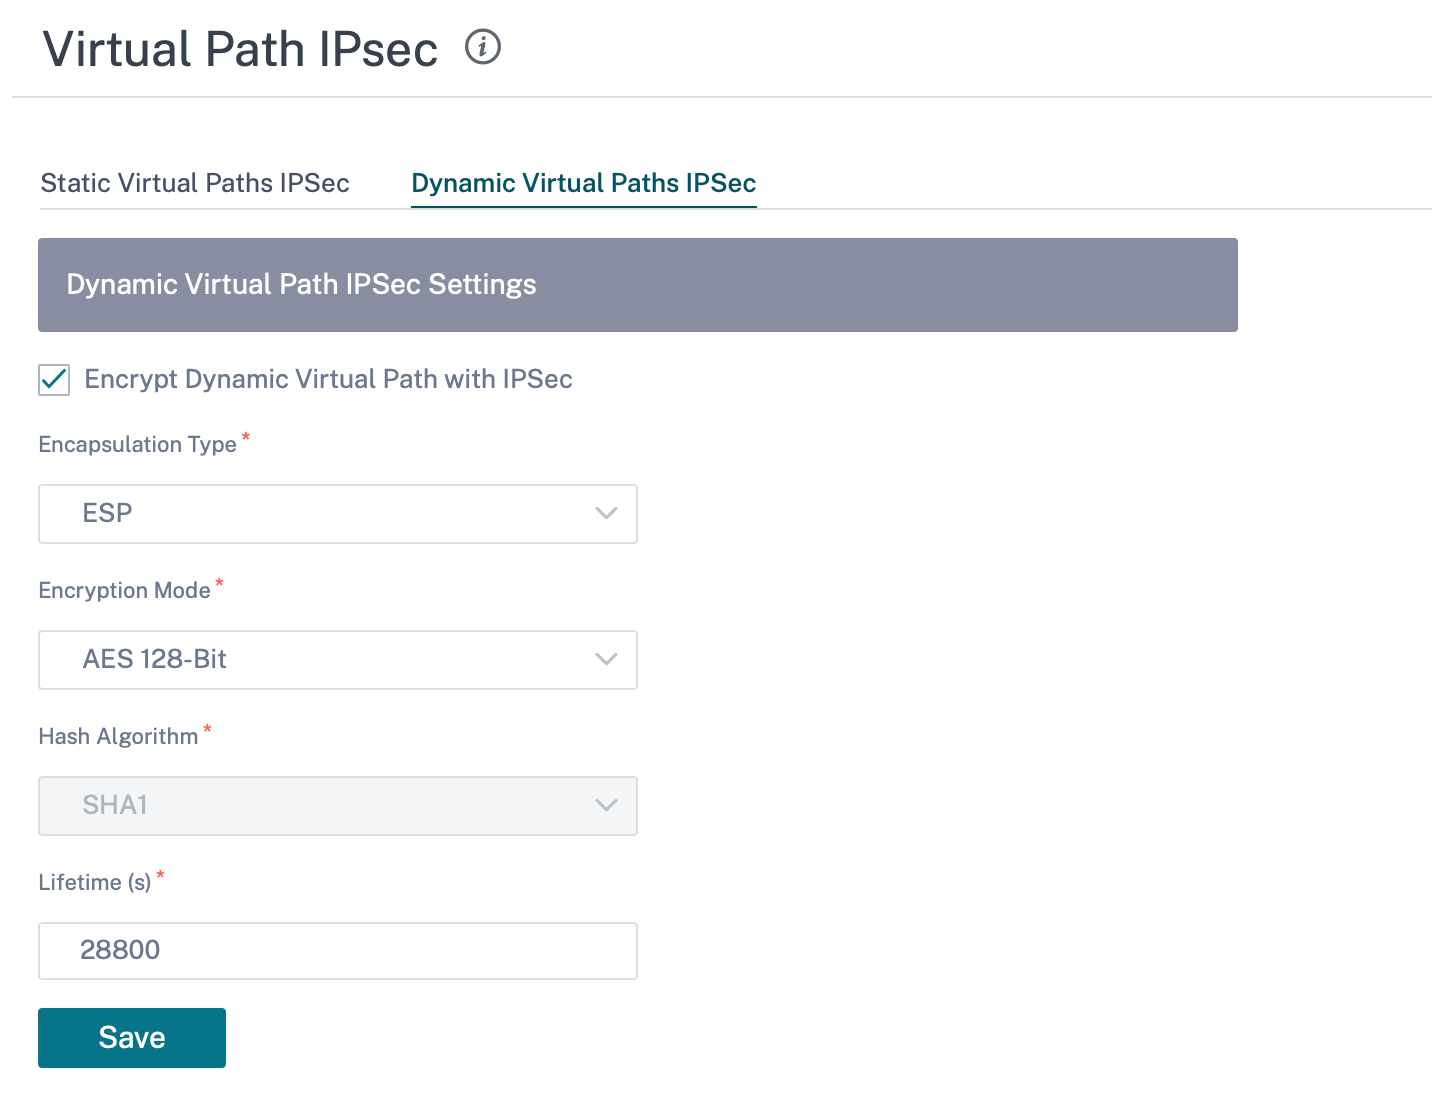 Virtual path IPsec setting